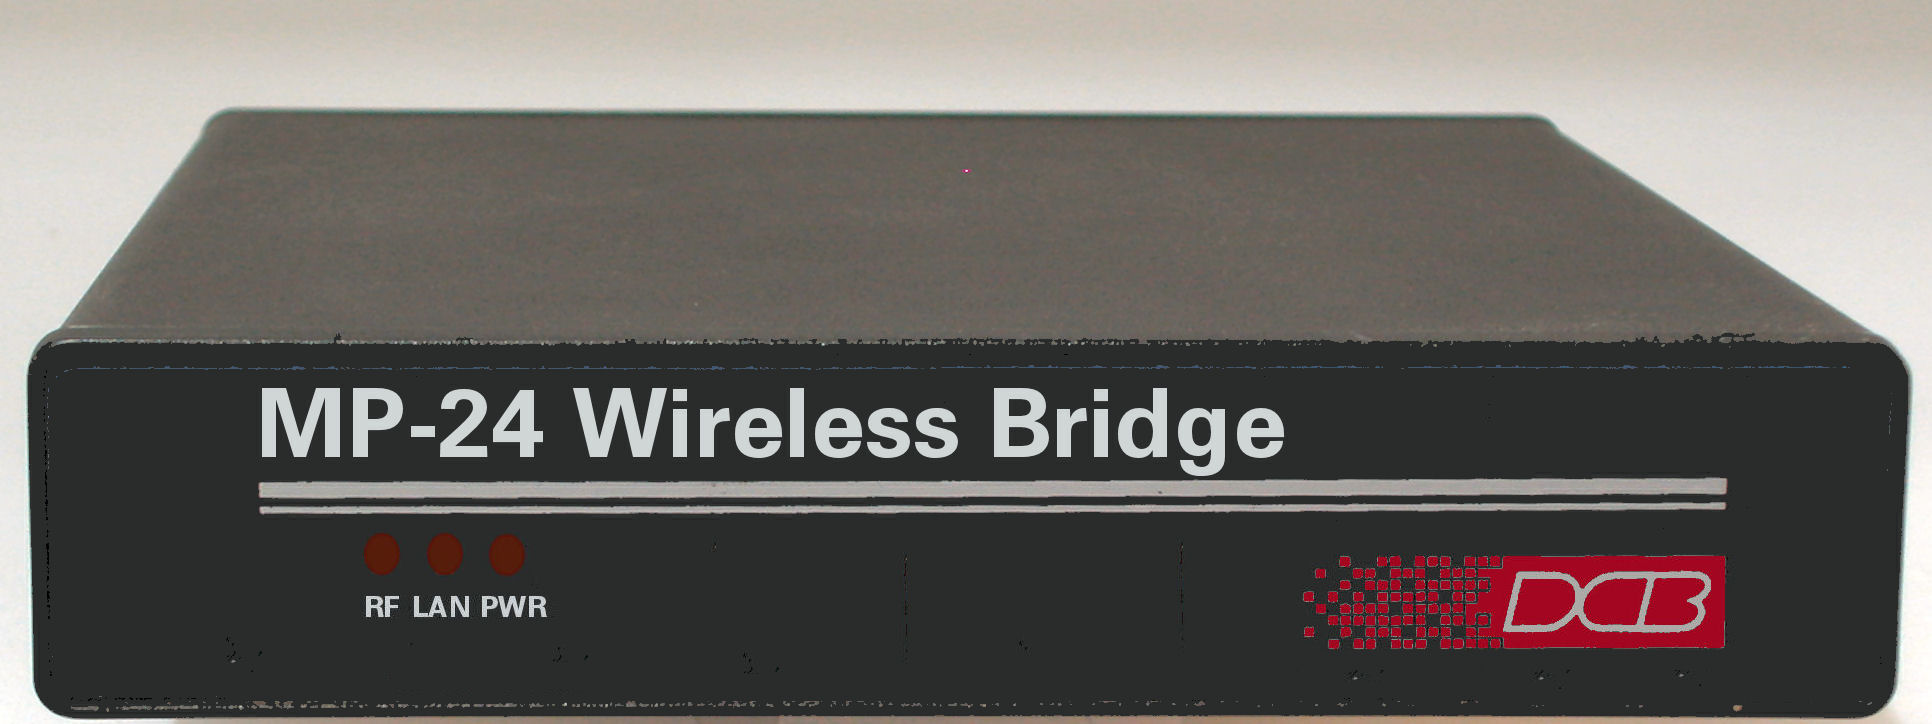 Image result for networking devices images wireless bridge